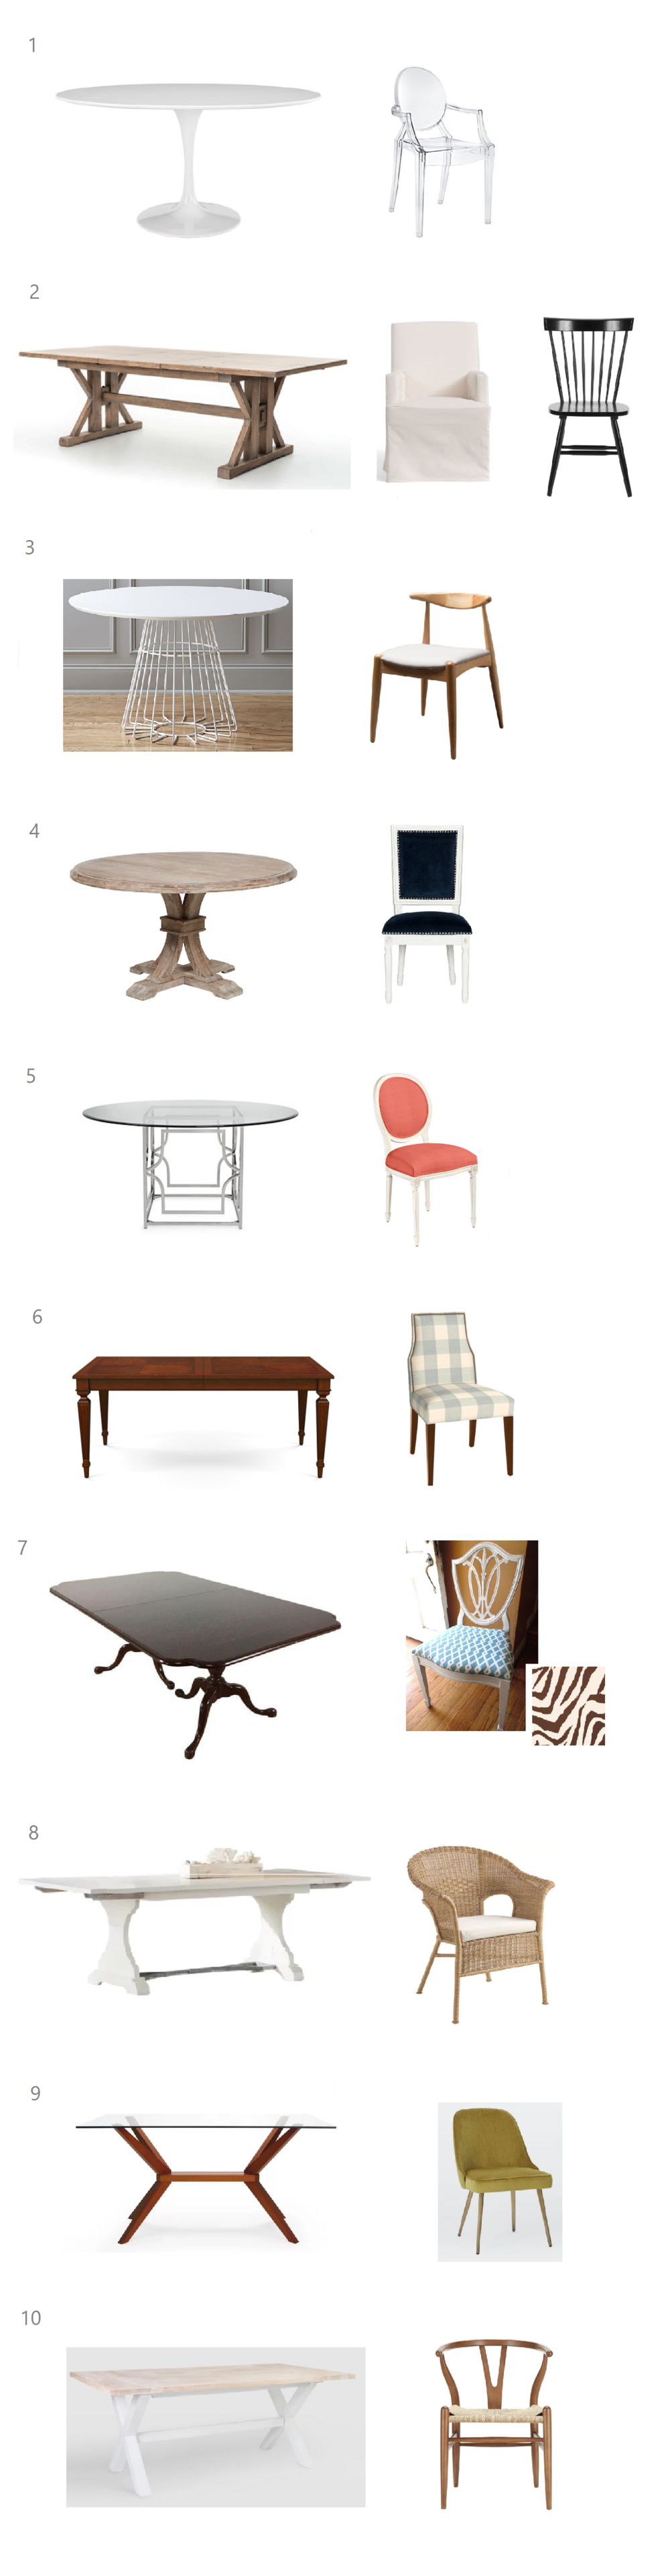 dining table chair combos.png